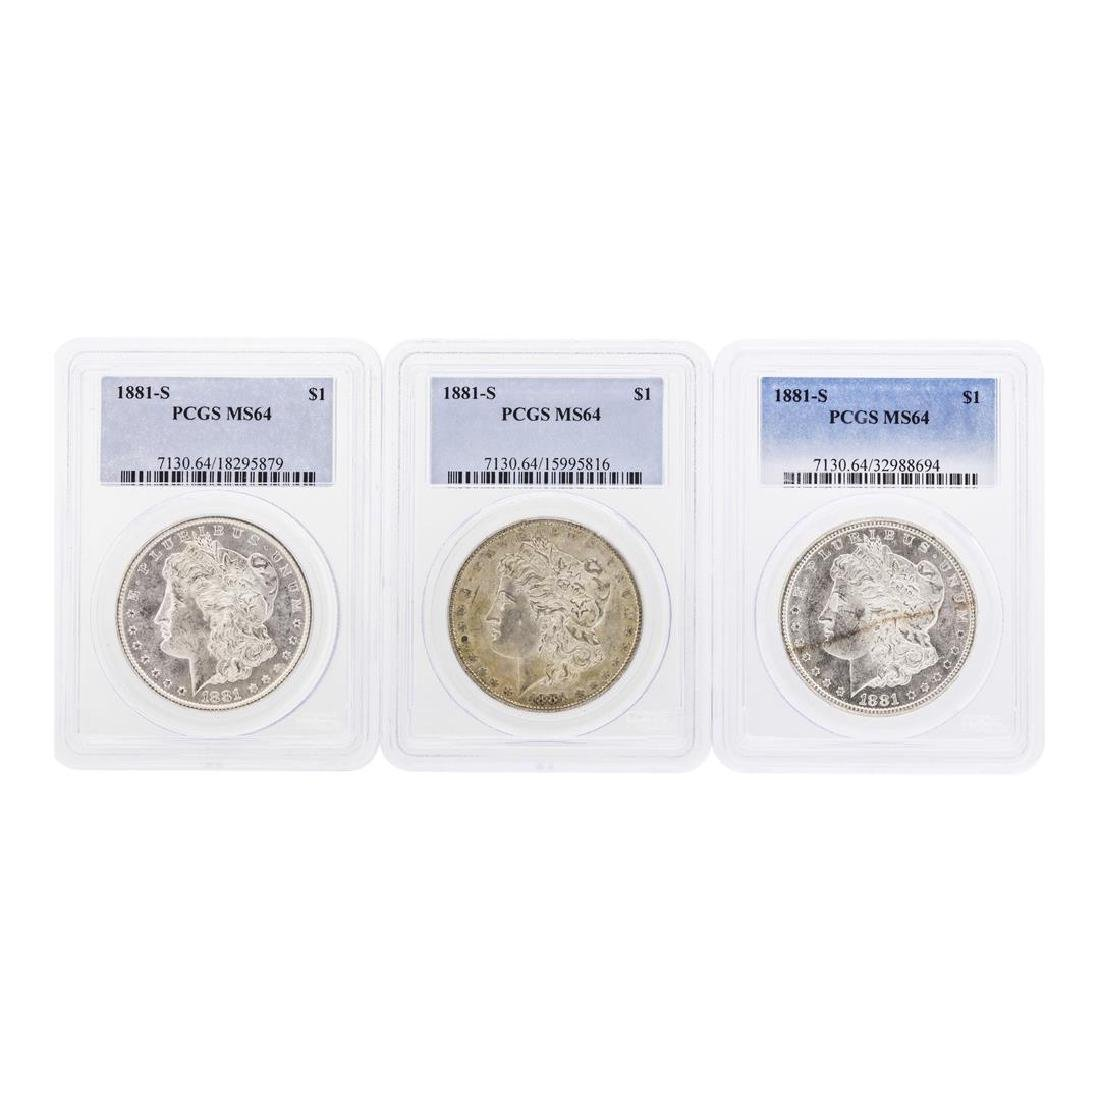 Lot of (3) 1881-S $1 Morgan Silver Dollar Coins PCGS